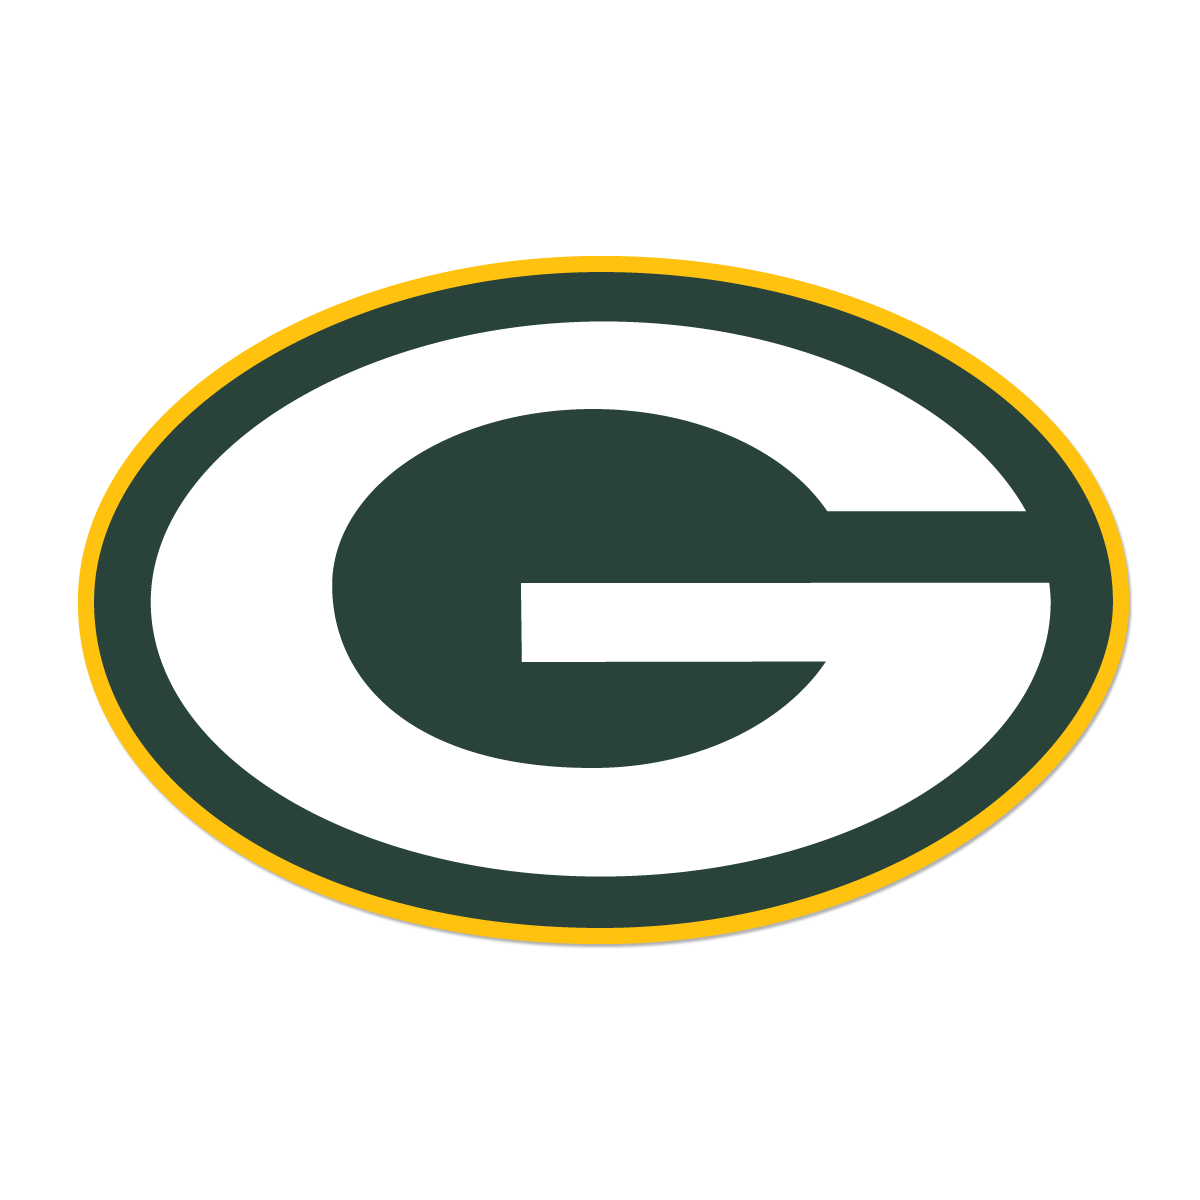 American Grand Is Proudly A Home Of Green Bay Fans We Ll Be Cheering Them On Tonight From Neenah And Ka Green Bay Packers Game Green Bay Packers Nfl Green Bay